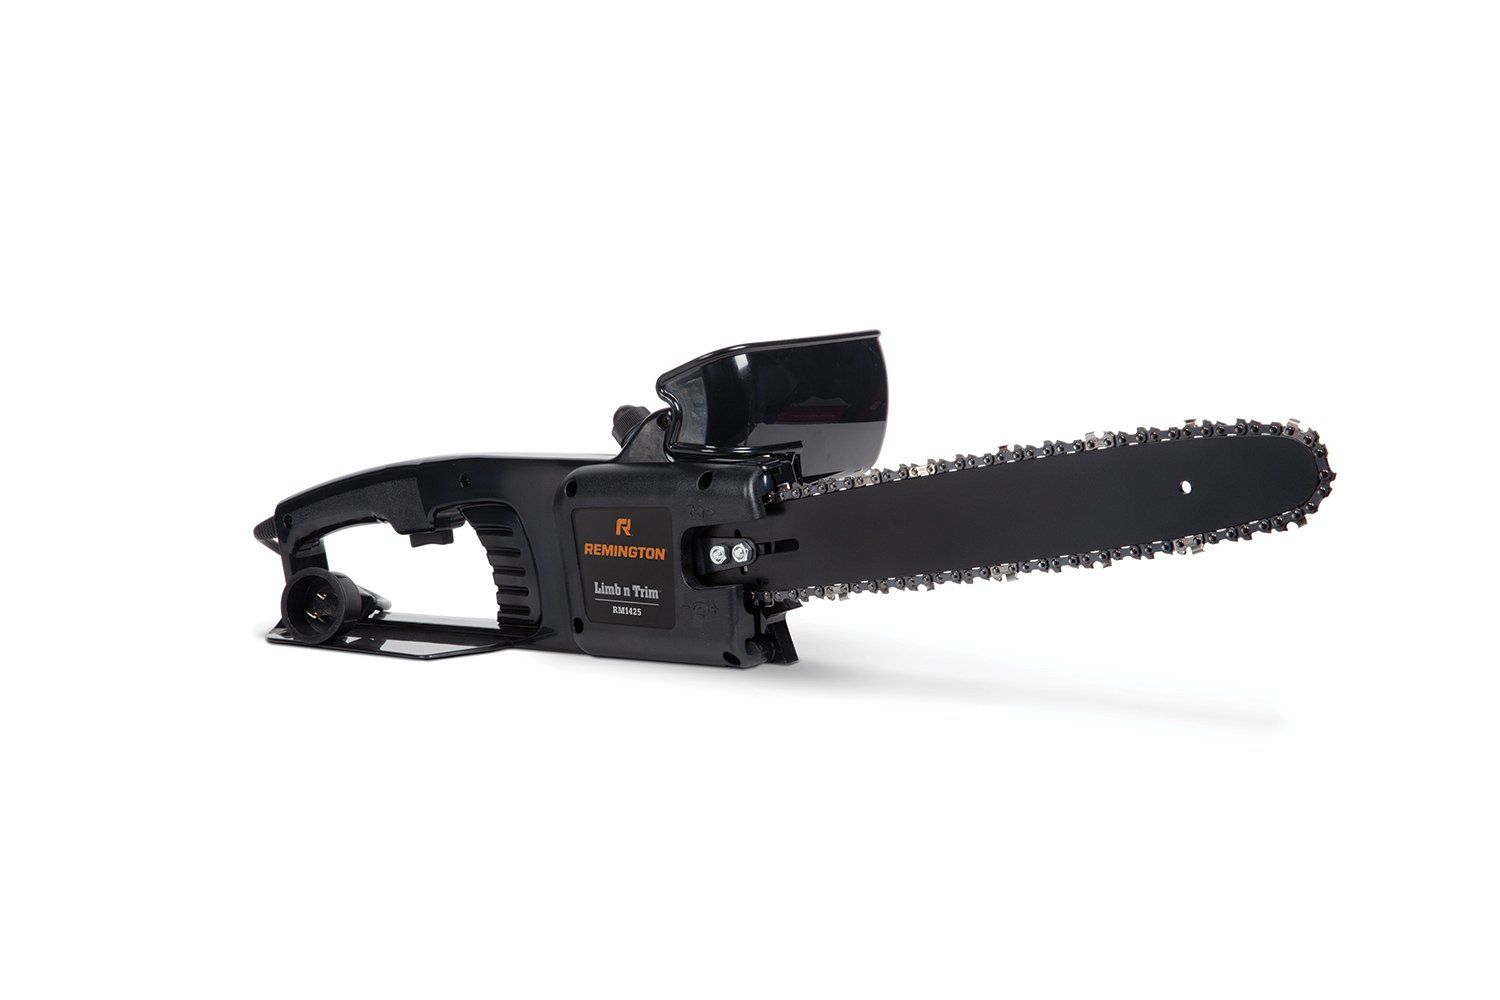 Remington rm1425 limb n trim 8 amp 14 inch electric chainsaw ebay remington rm1425 limb n trim 8 amp 14 inch electric chainsaw greentooth Gallery